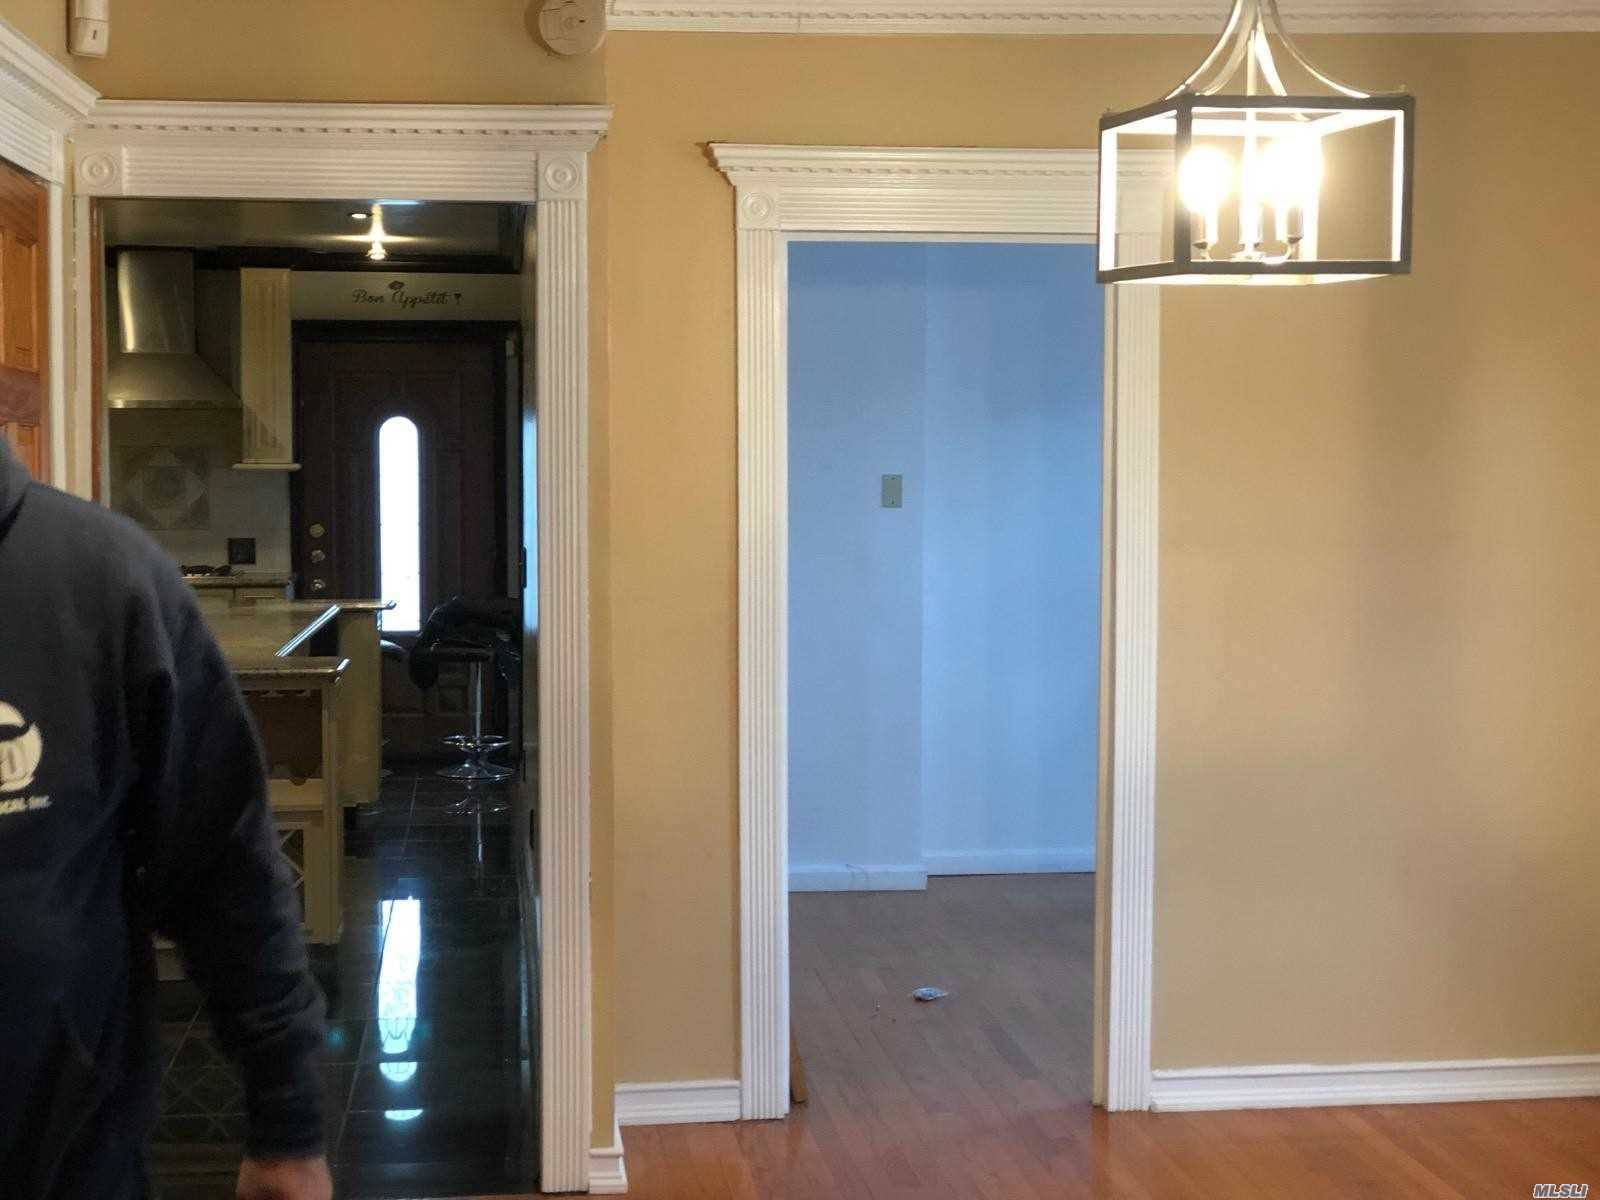 Beautiful 3 Bed Room Apartment, 2 Full Bath, Electric, Gas, Heat, Water Included. Updated Kitchen With Stainless Steel Appliances , Granite Counters, Master Bedroom , Living Room And Dinning Room , Closets And Hard Wood Floors. Note:!!!!! All Utilities Are Included !!!!!!!!